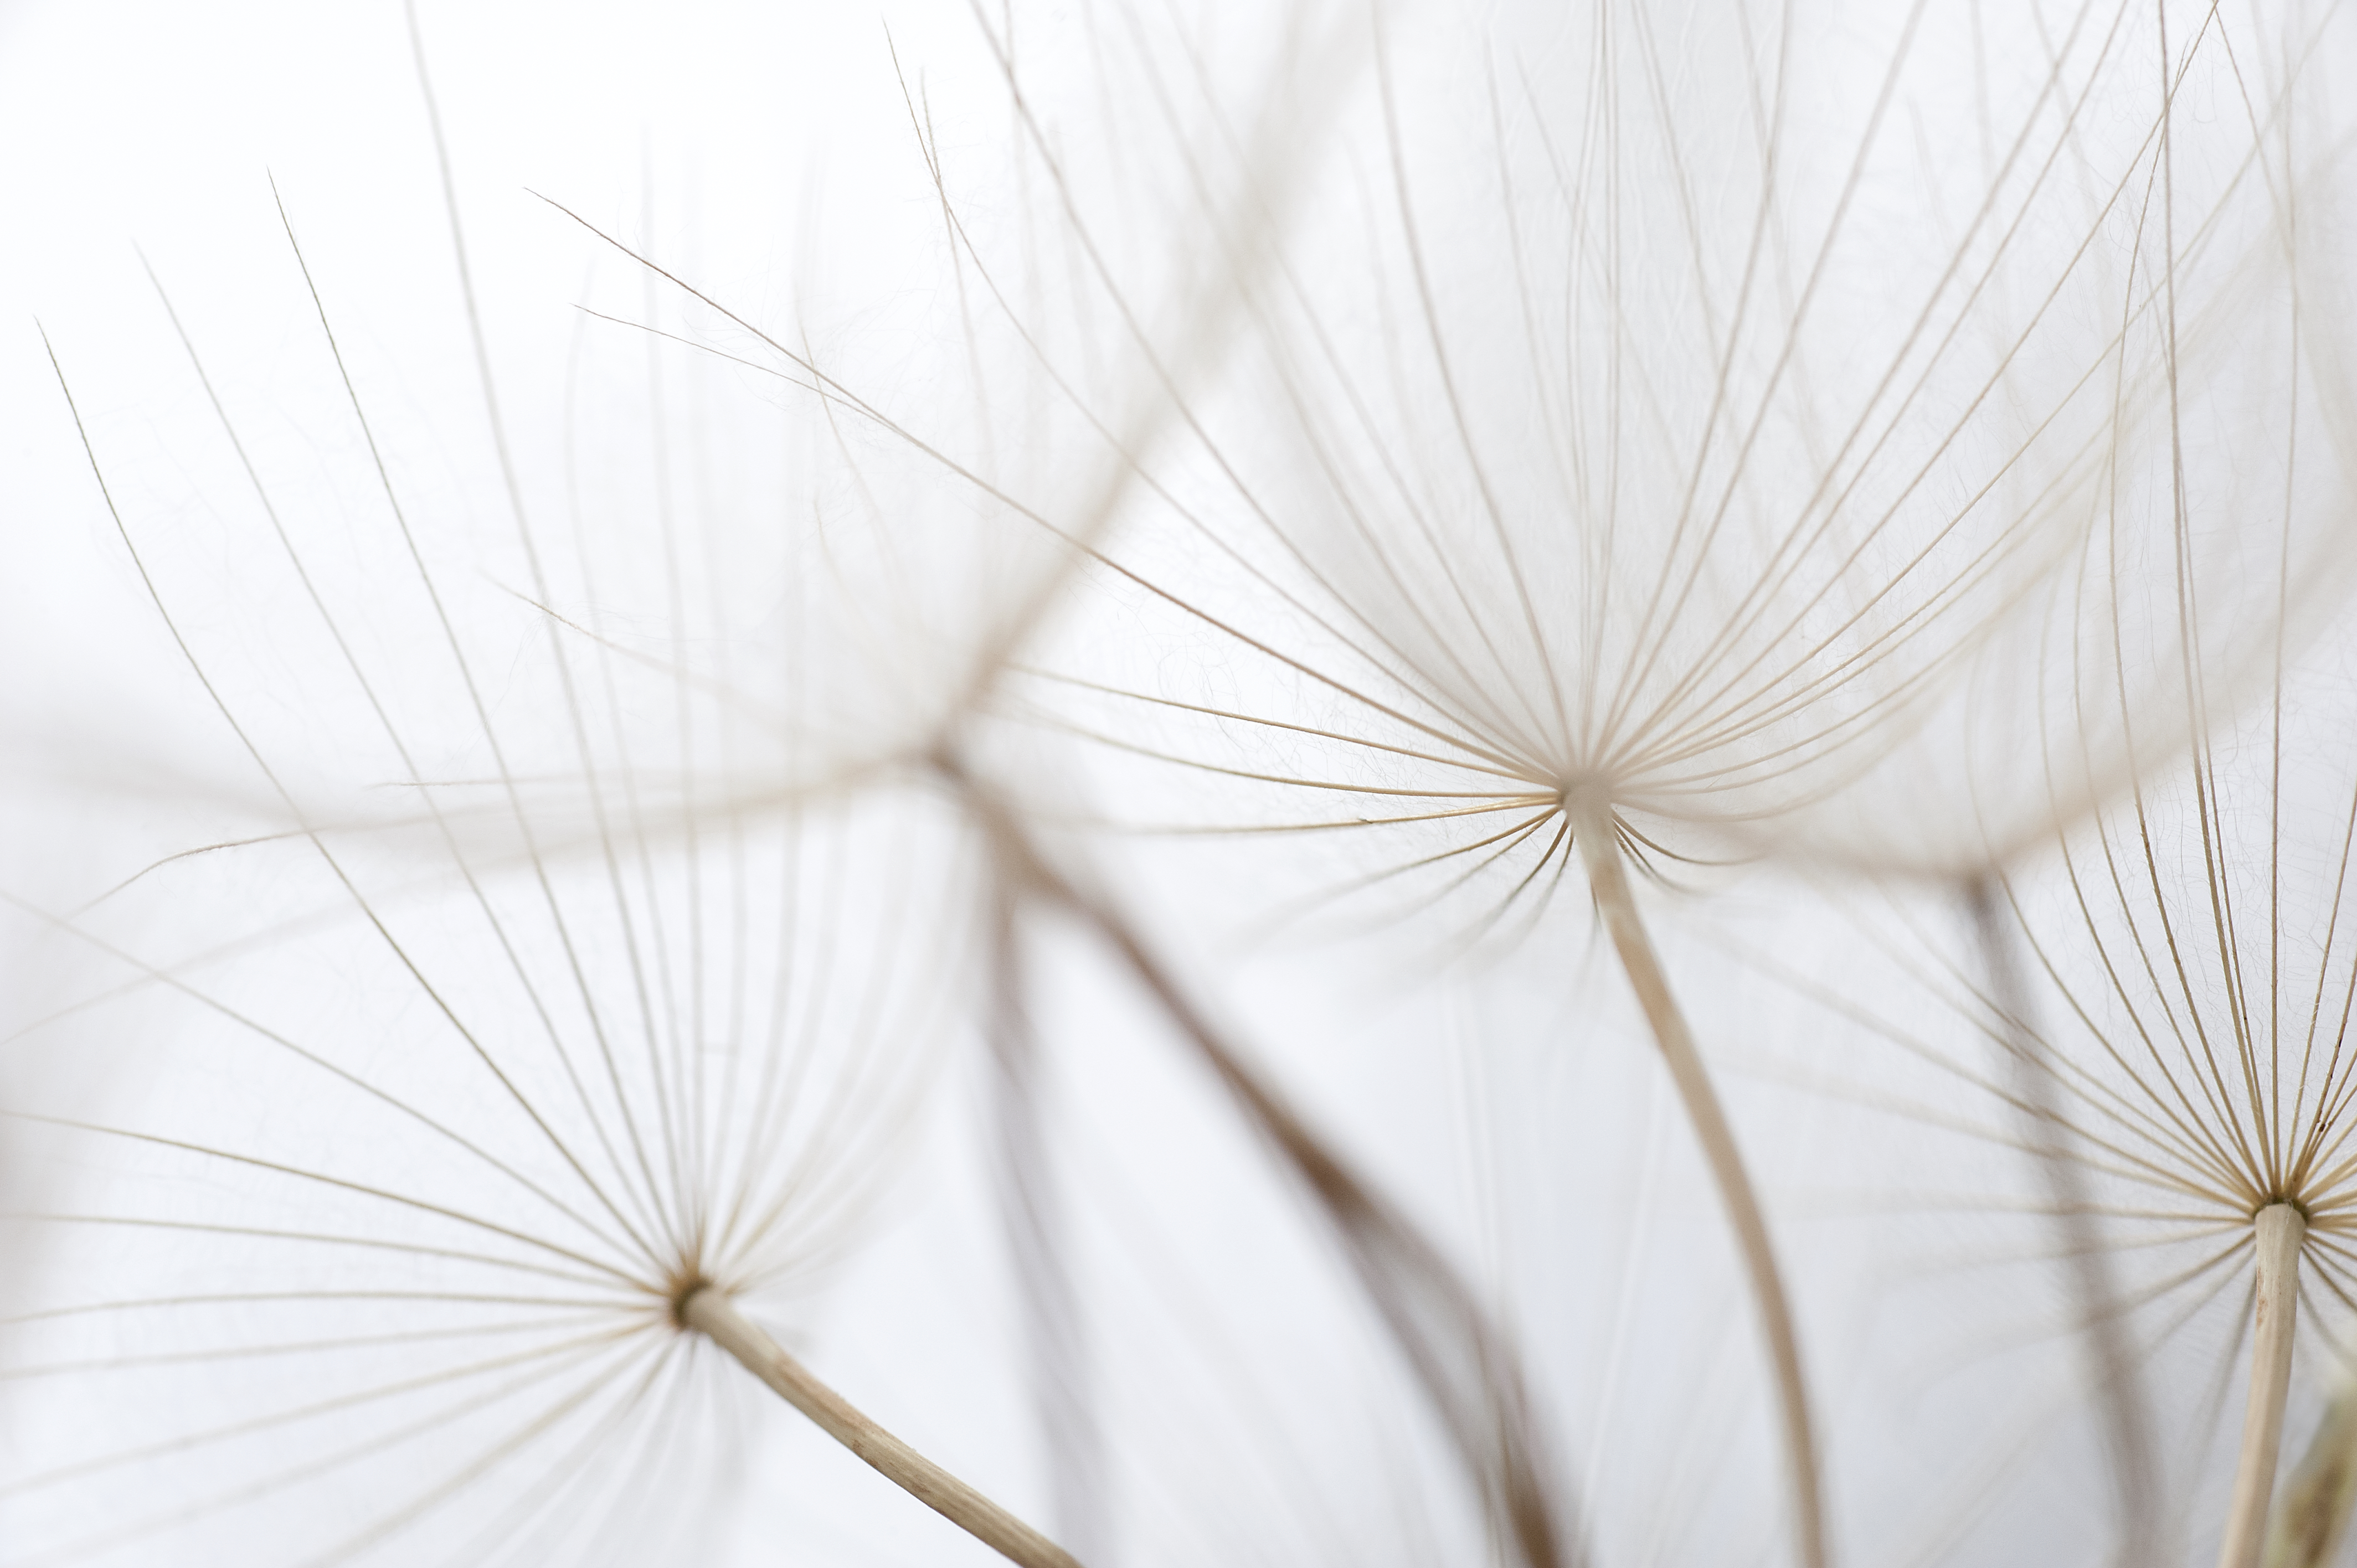 Dandelion Umbrella Seeds